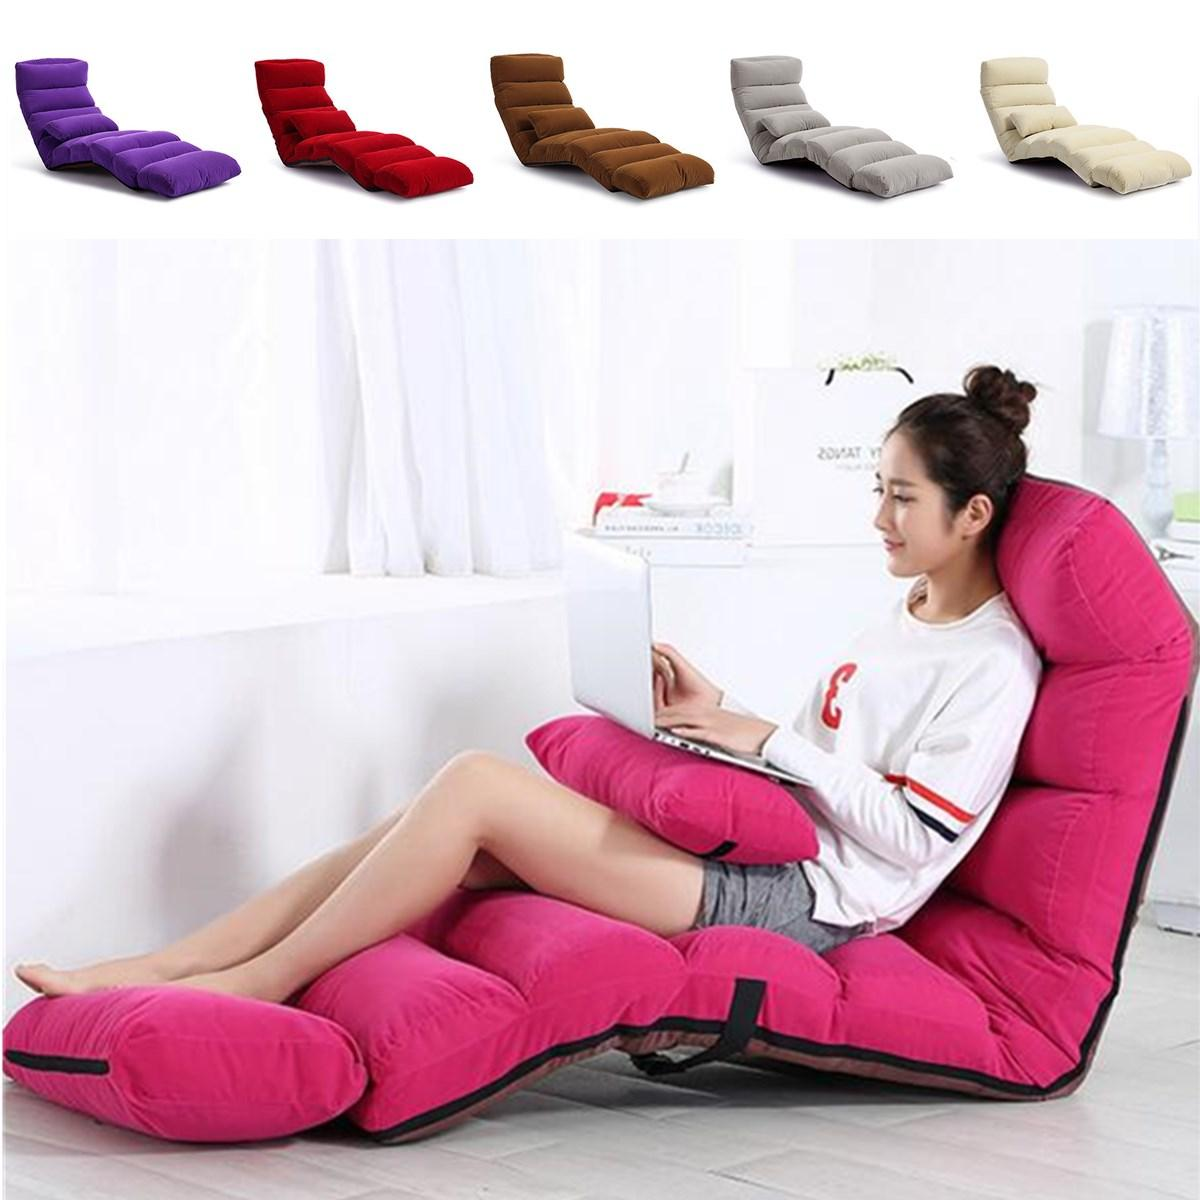 Phenomenal 205Cm 3 Folding Lazy Sofa Chair Portable Stylish Couch Bed Lounge With Pillow Back Support Gamerscity Chair Design For Home Gamerscityorg